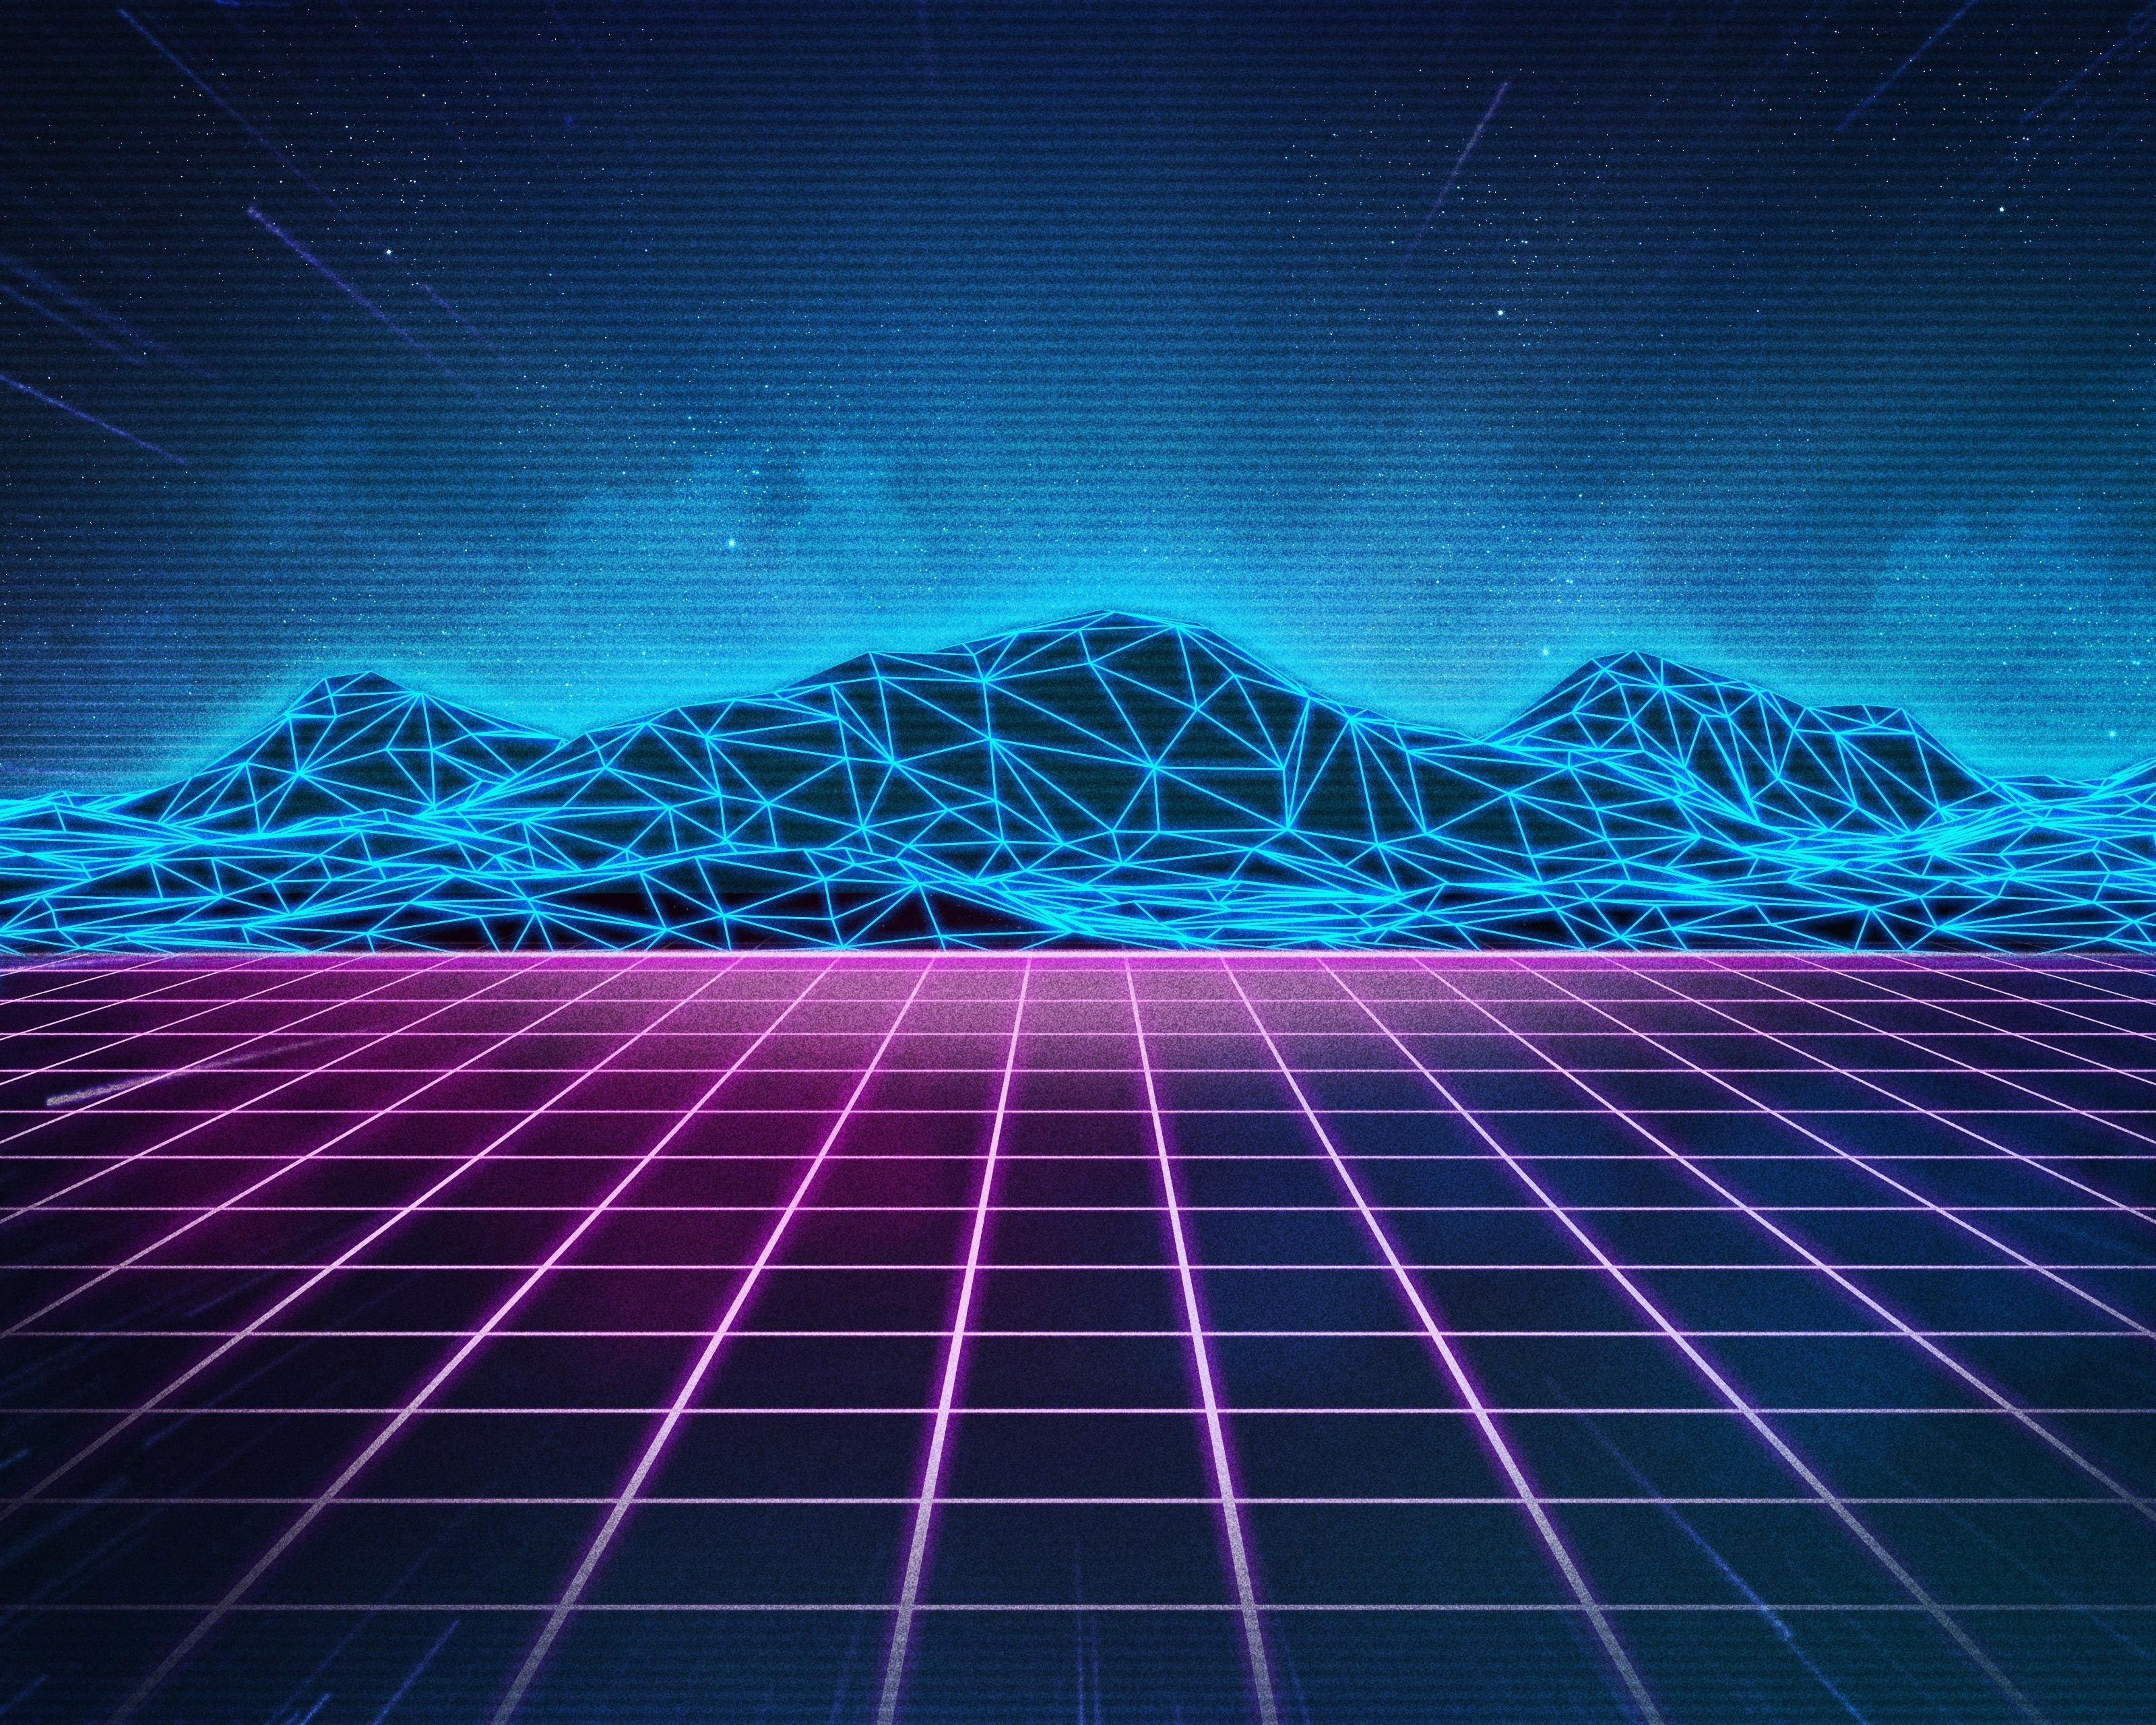 rad pack 80's-themed hd wallpapers – nate wren – graphic design